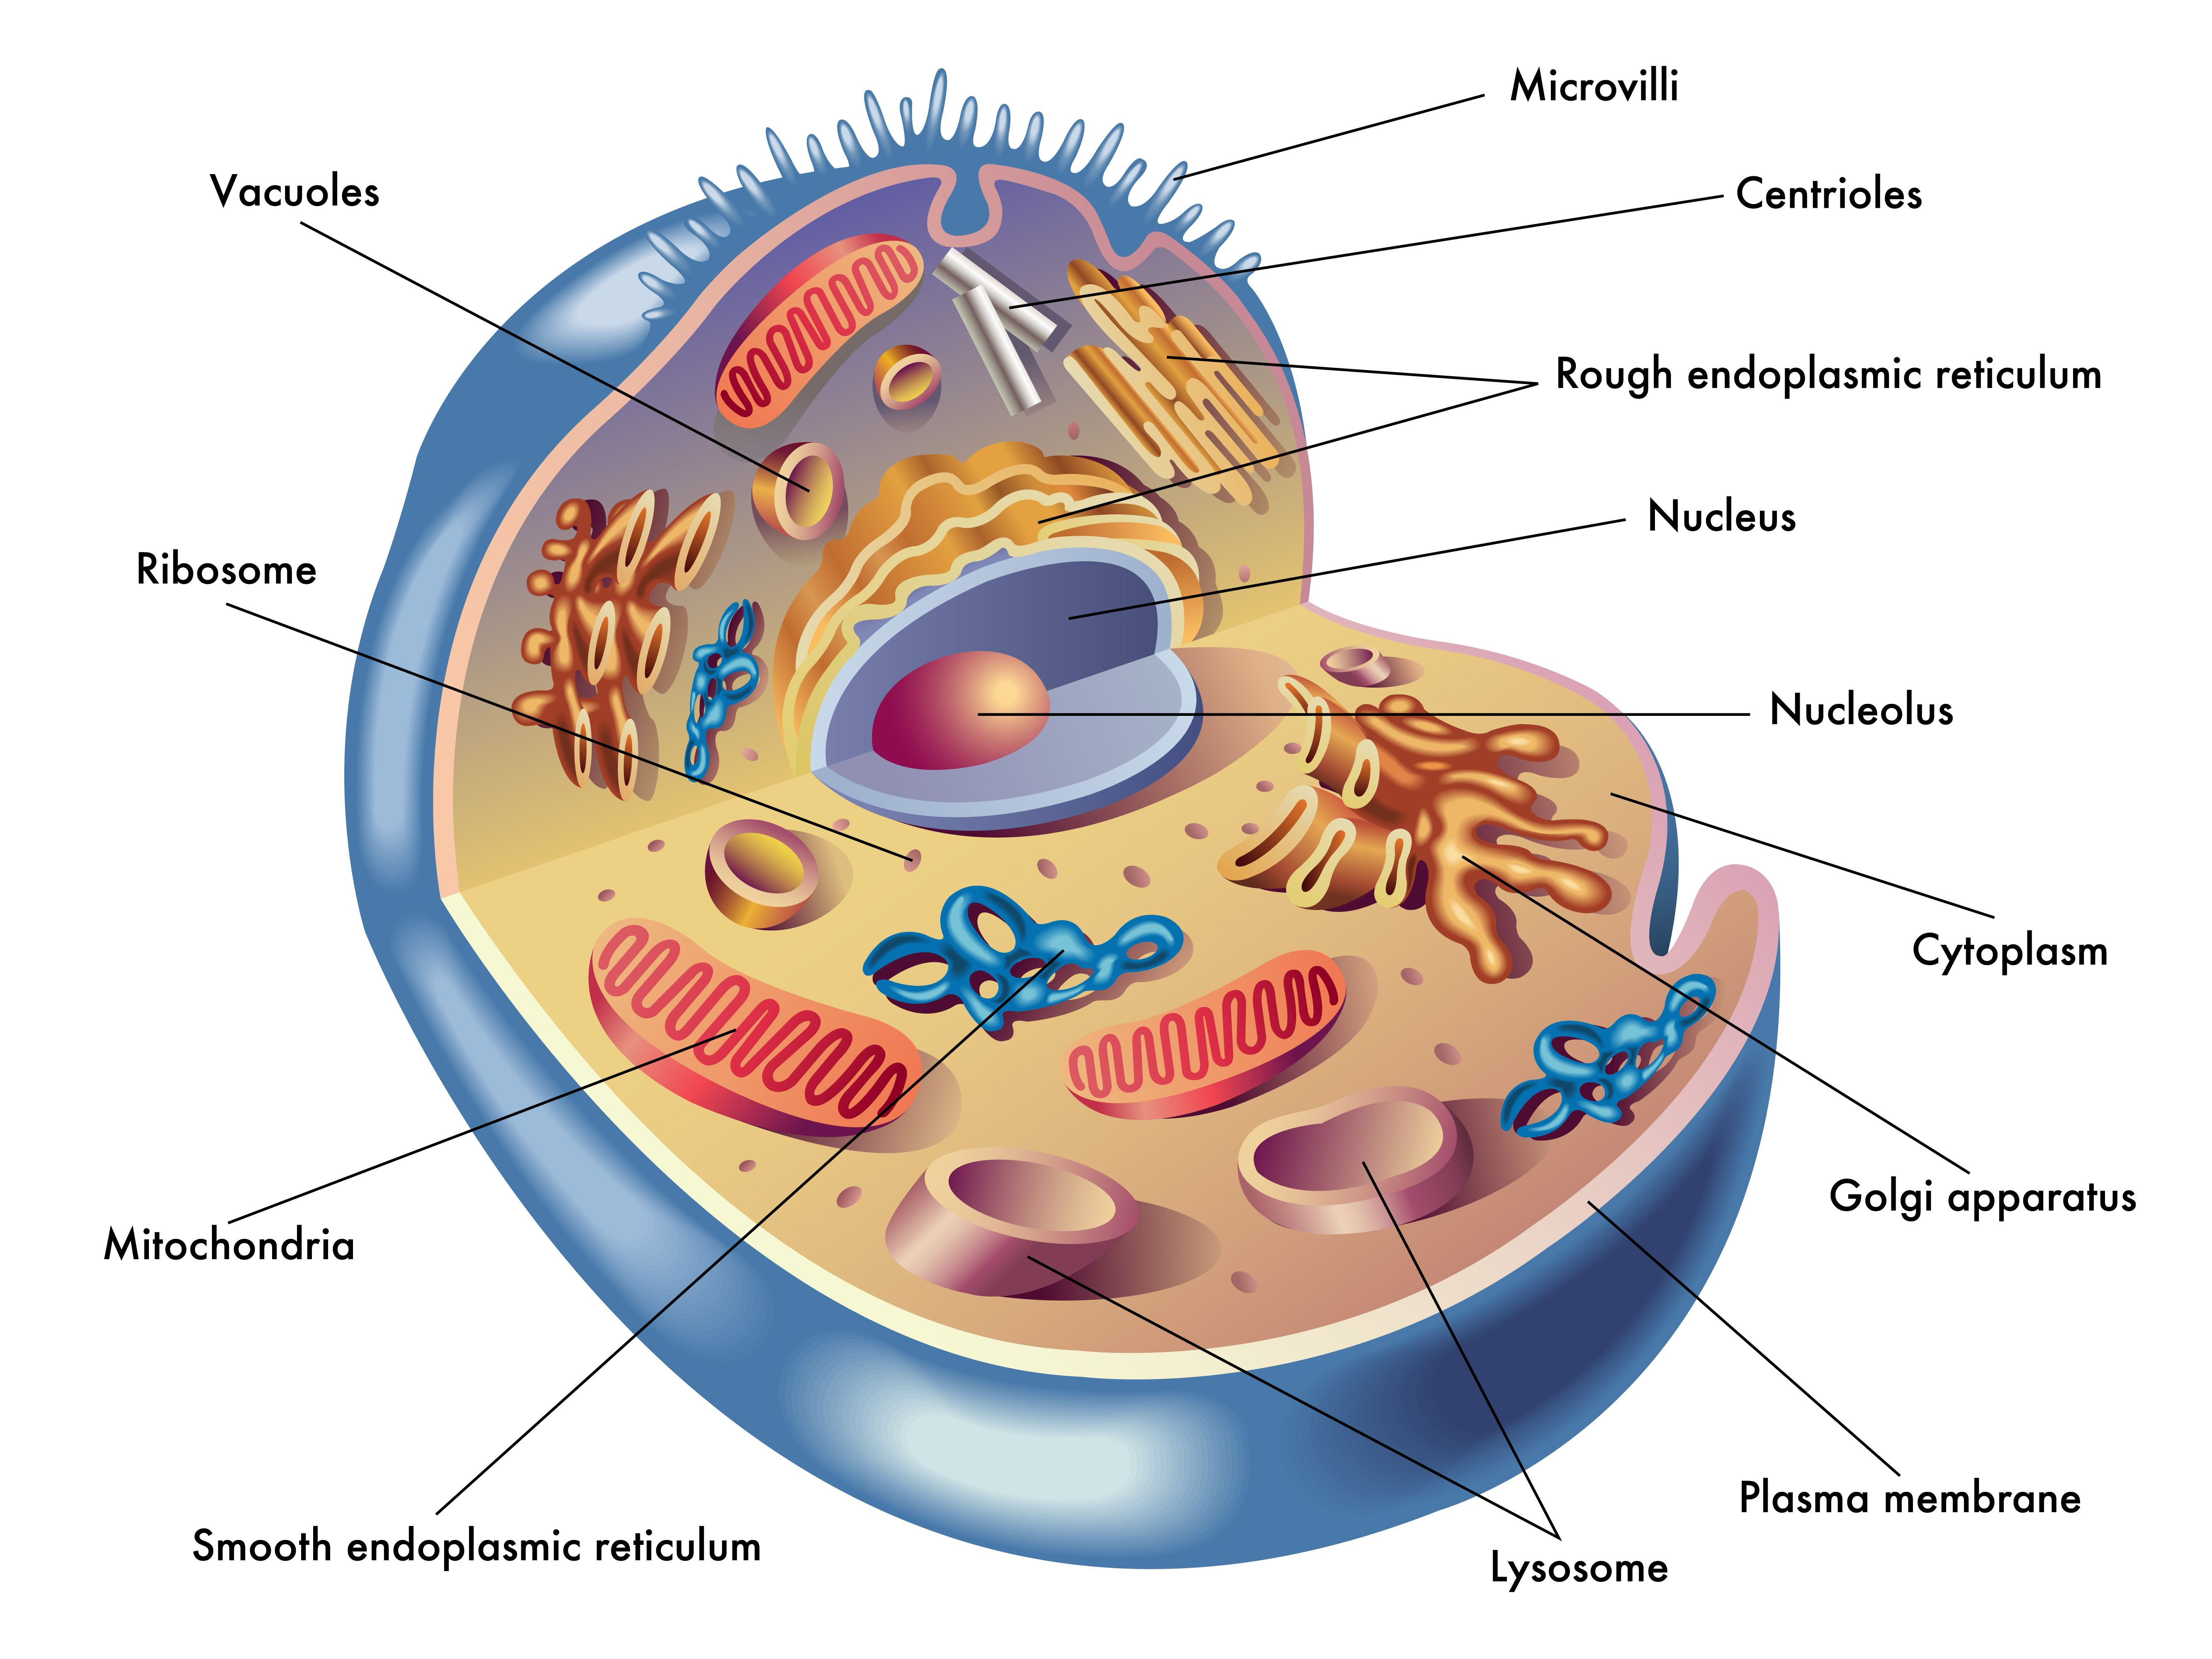 Why Don't I Have Any Energy? All about your mitochondria